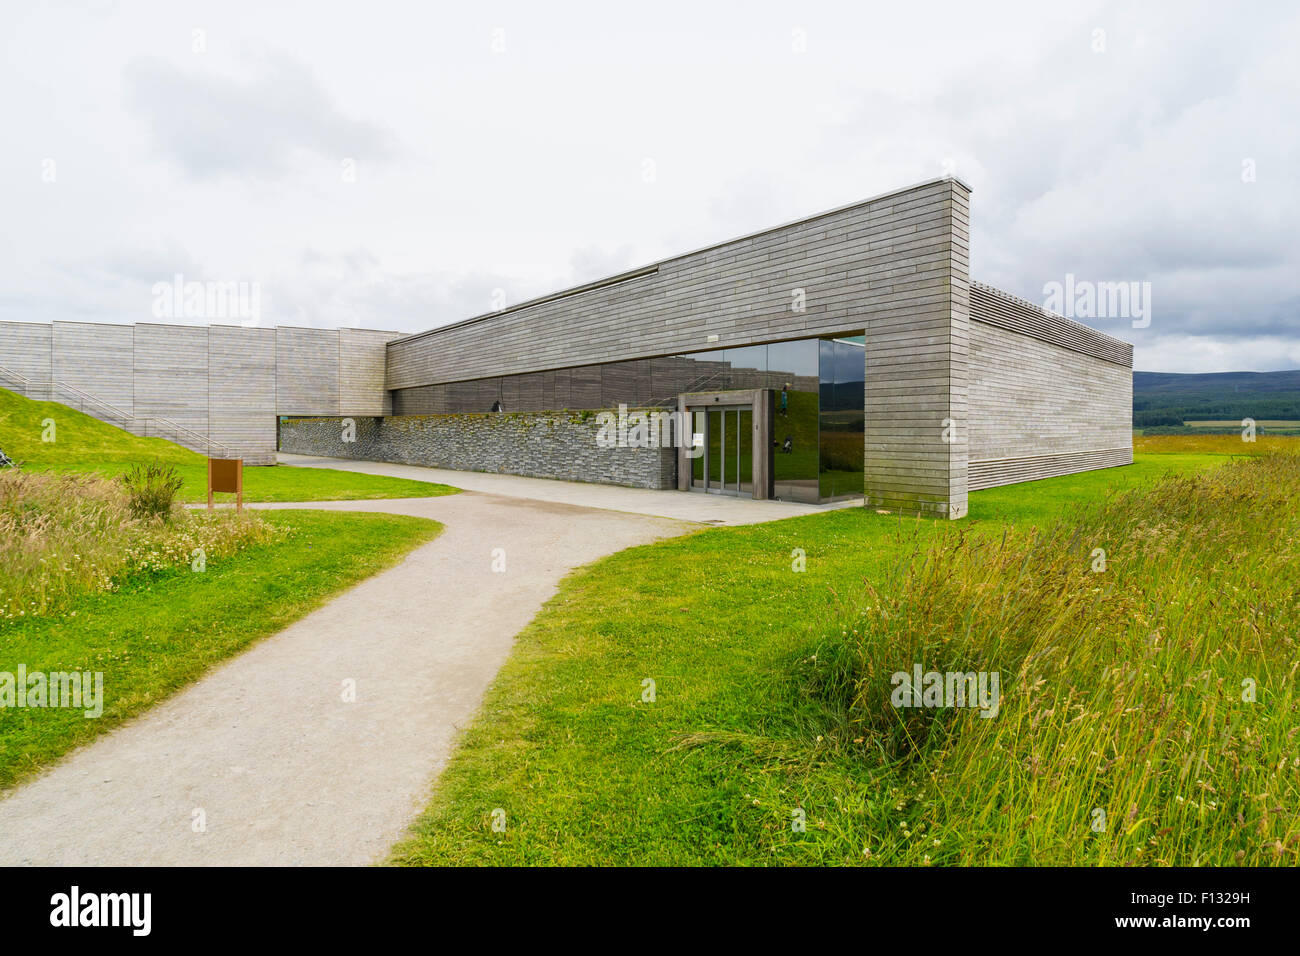 National Trust for Scotland Visitor Centre at Culloden Moor in Scotland. - Stock Image